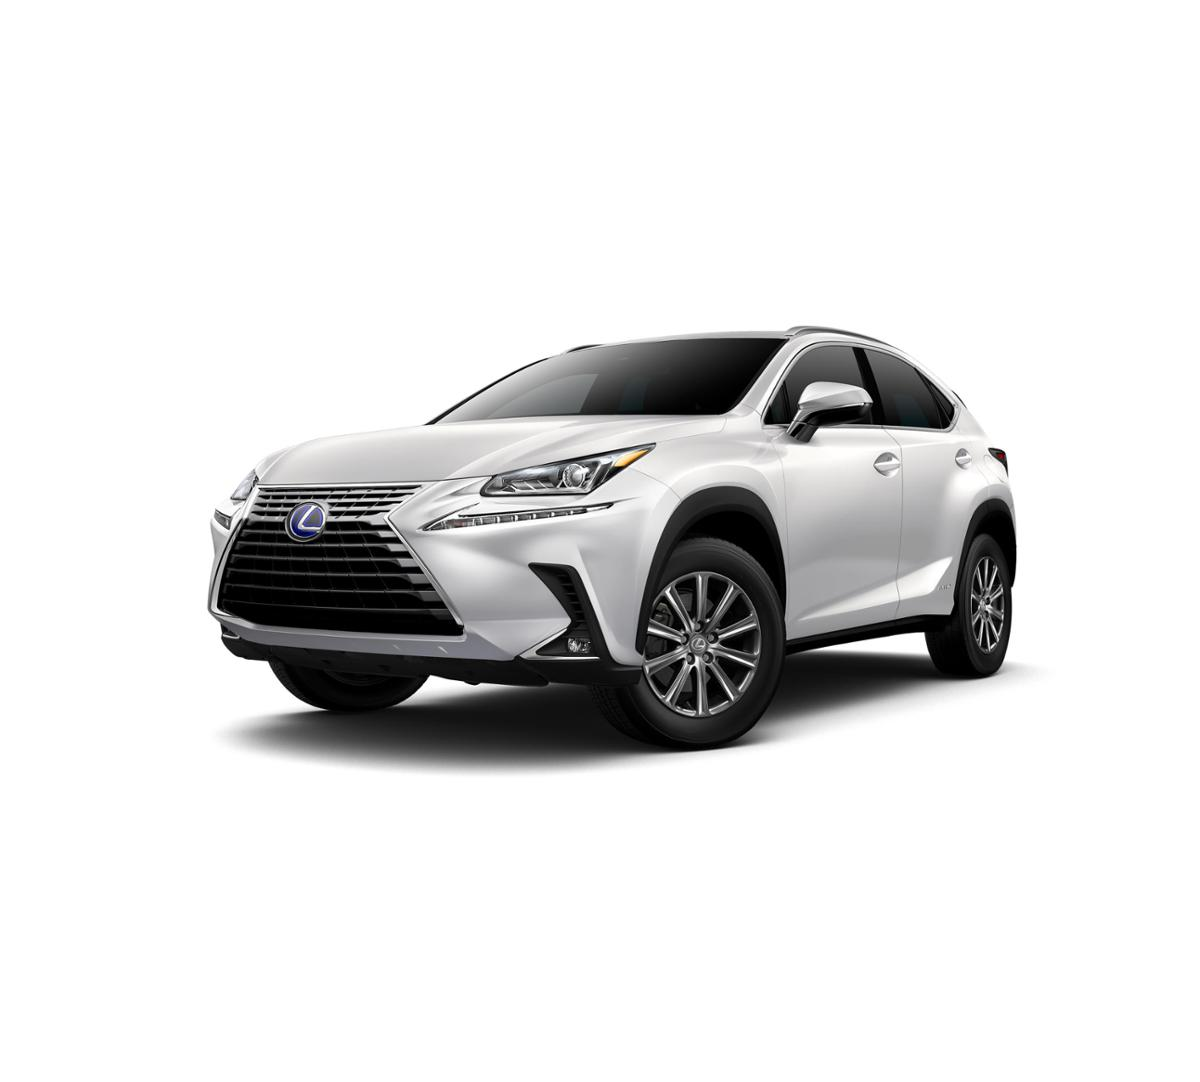 2020 Lexus NX Vehicle Photo in Santa Monica, CA 90404